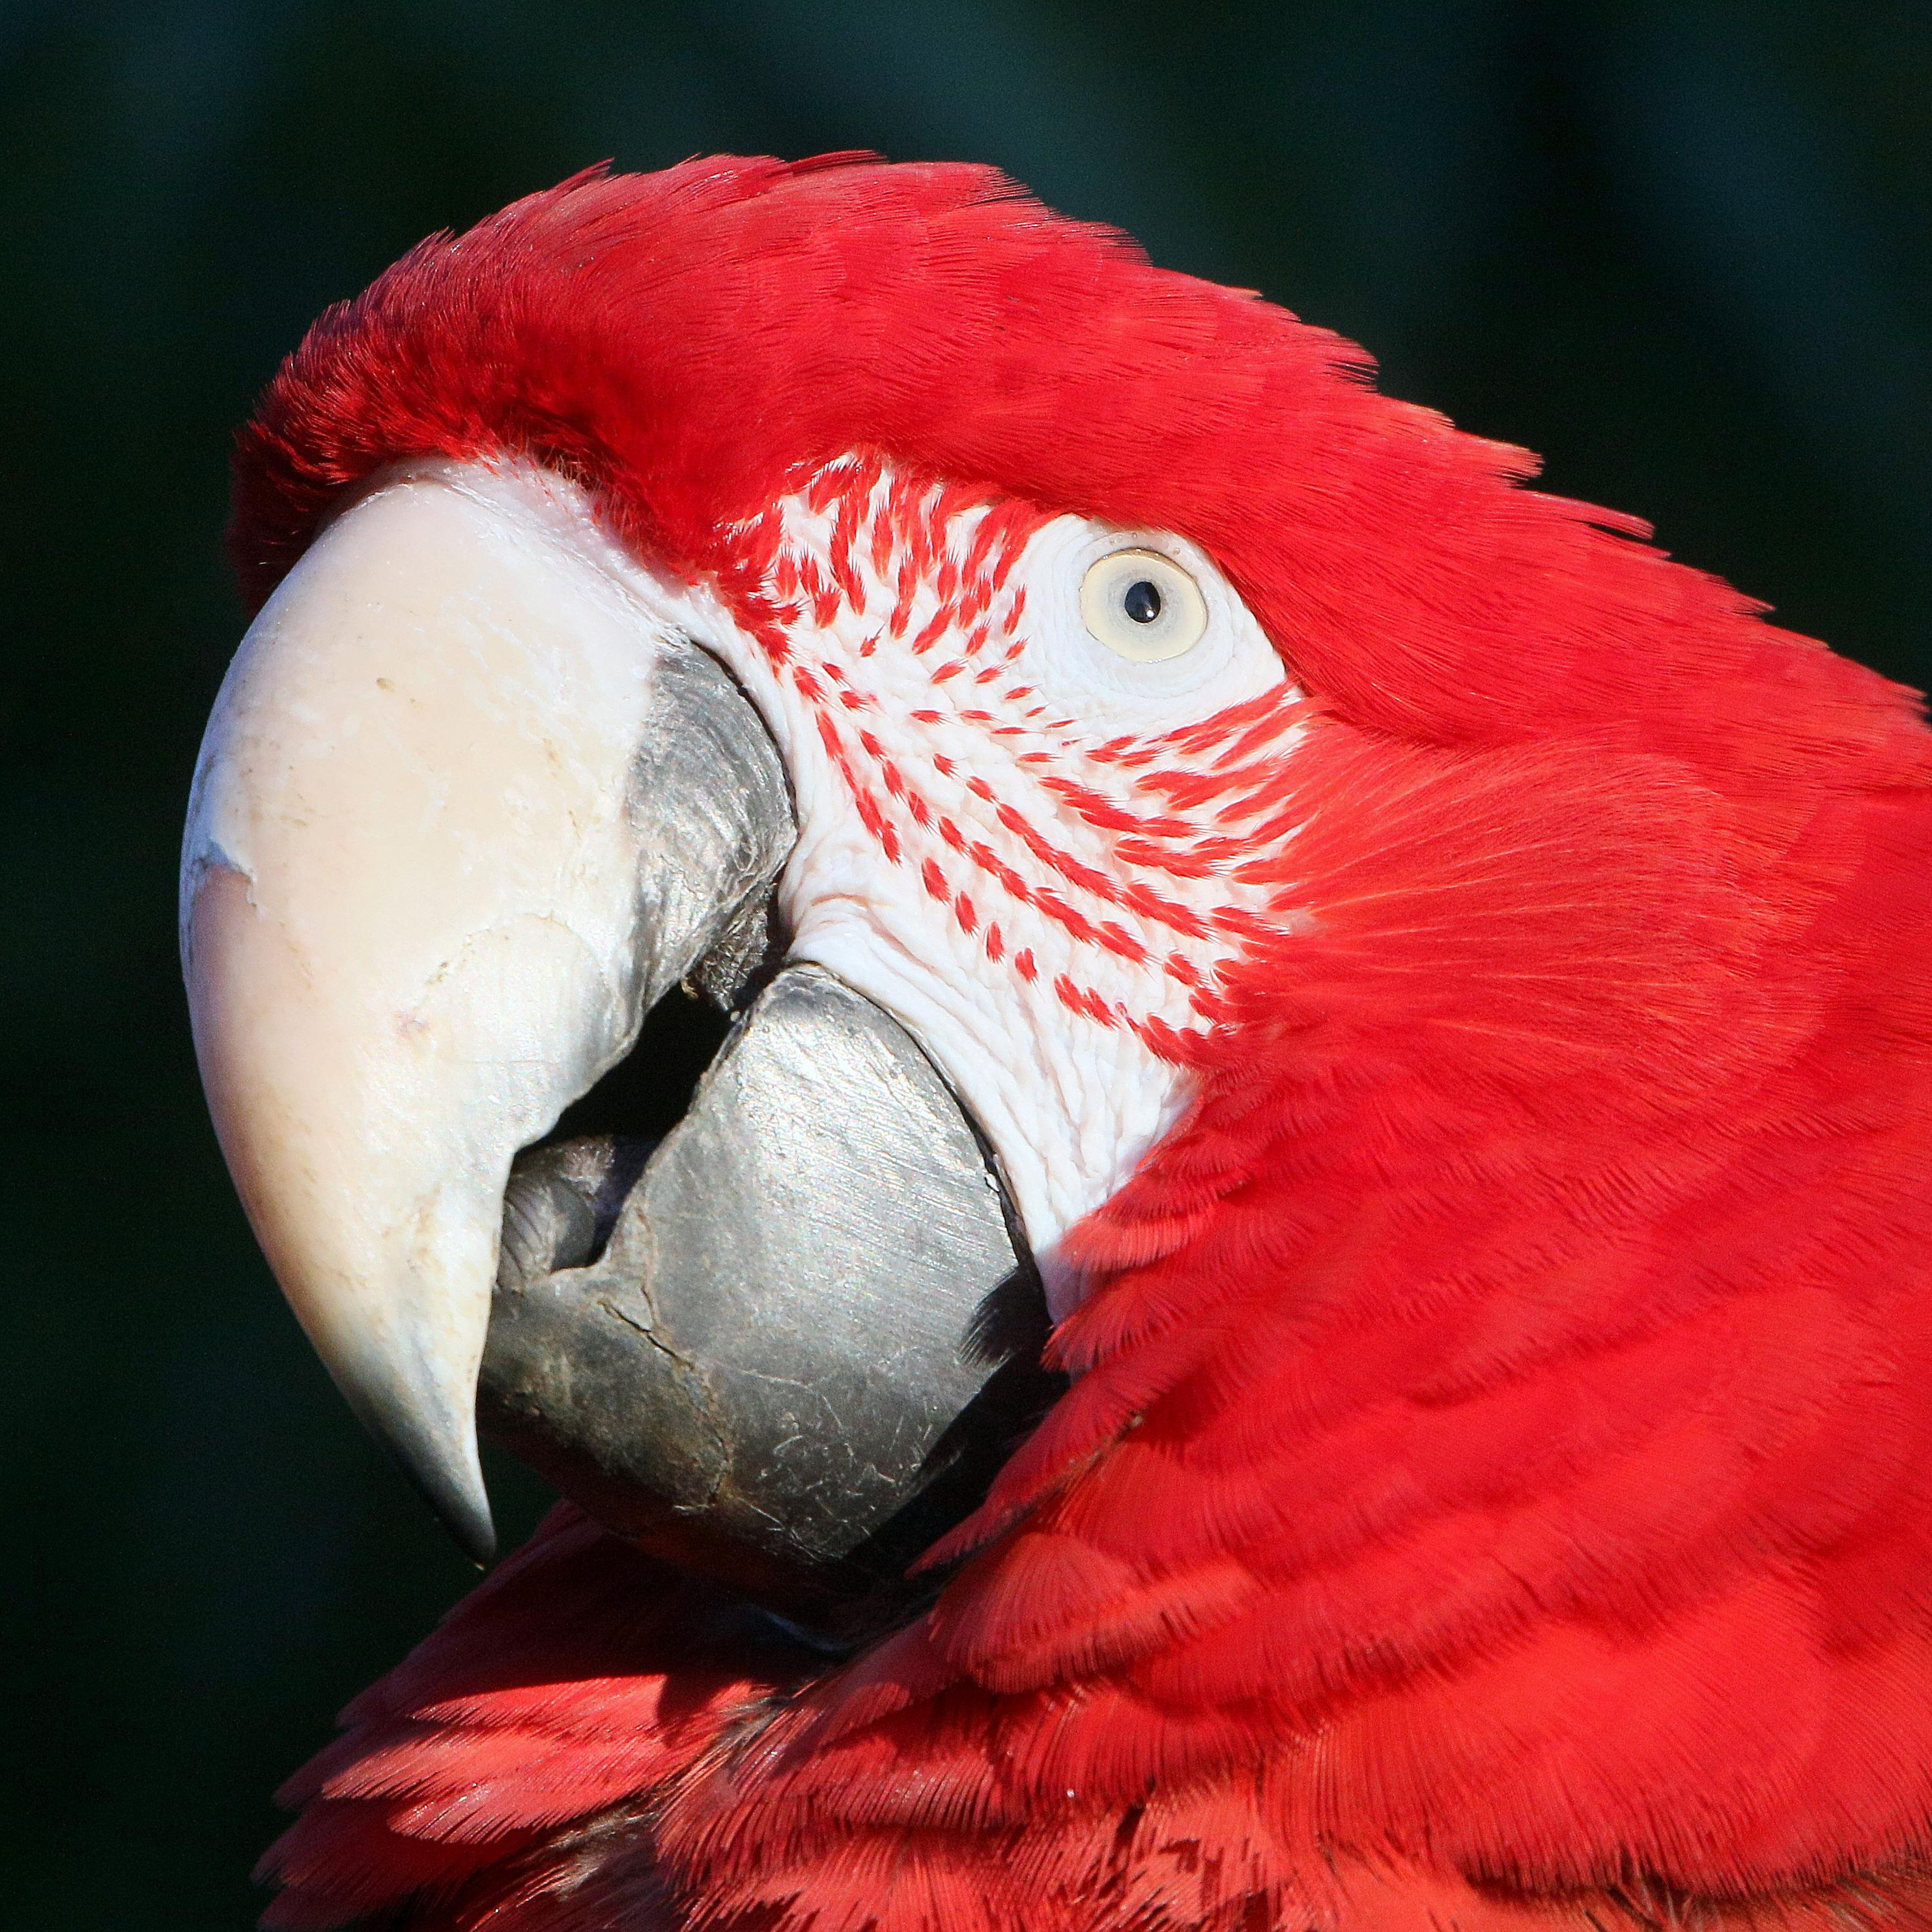 What Is Parrot Eye Pinning?